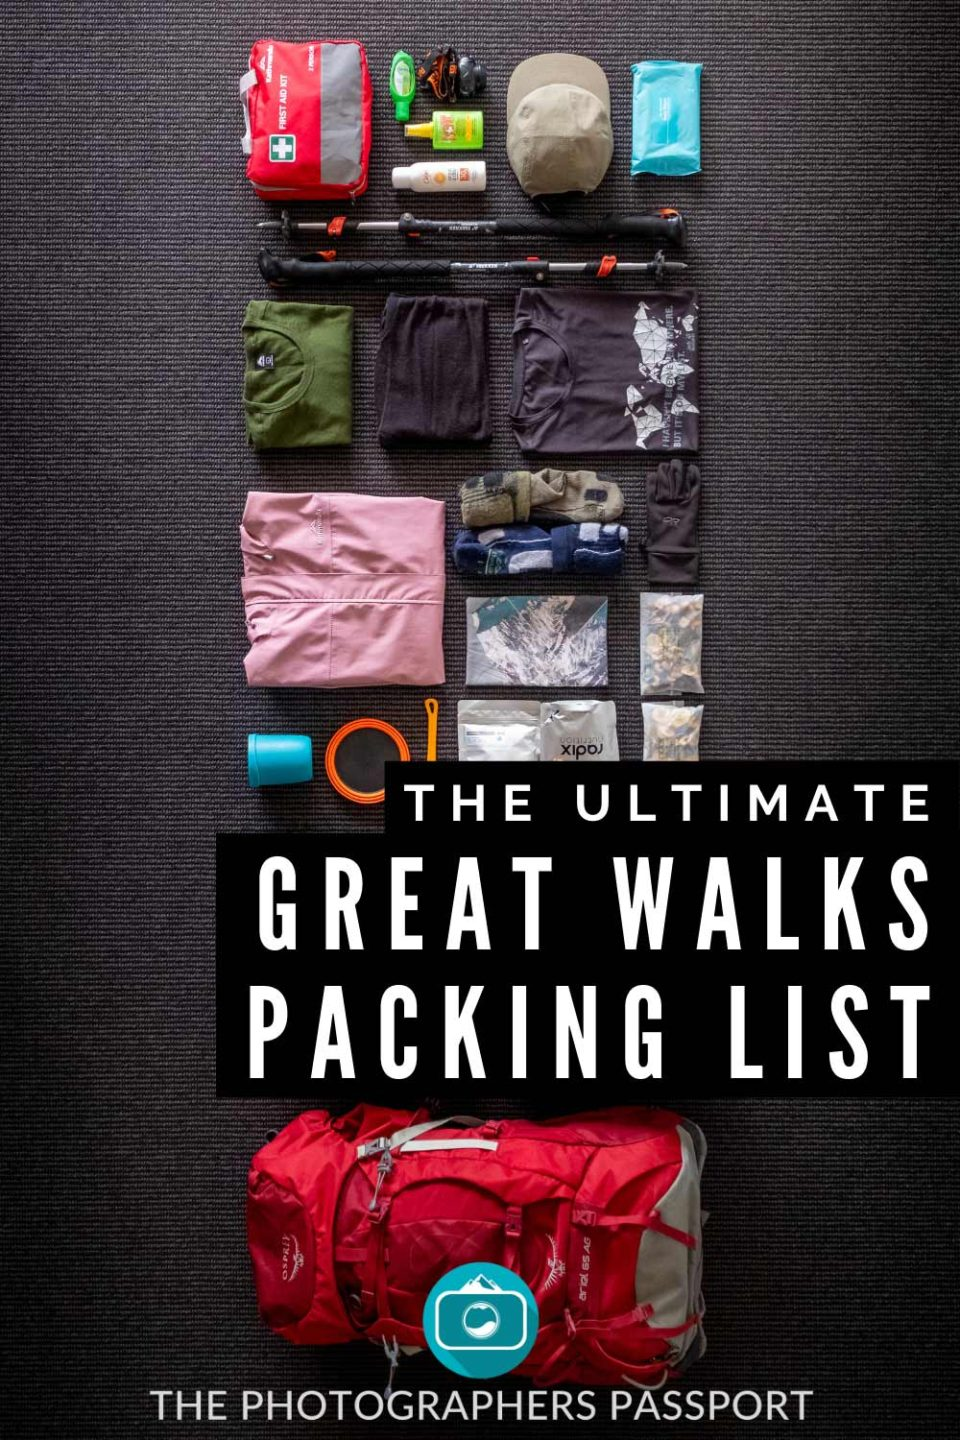 Need some help packing for your next New Zealand backpacking trip? Well then click here to find out exactly what to add to your Great Walks packing list.